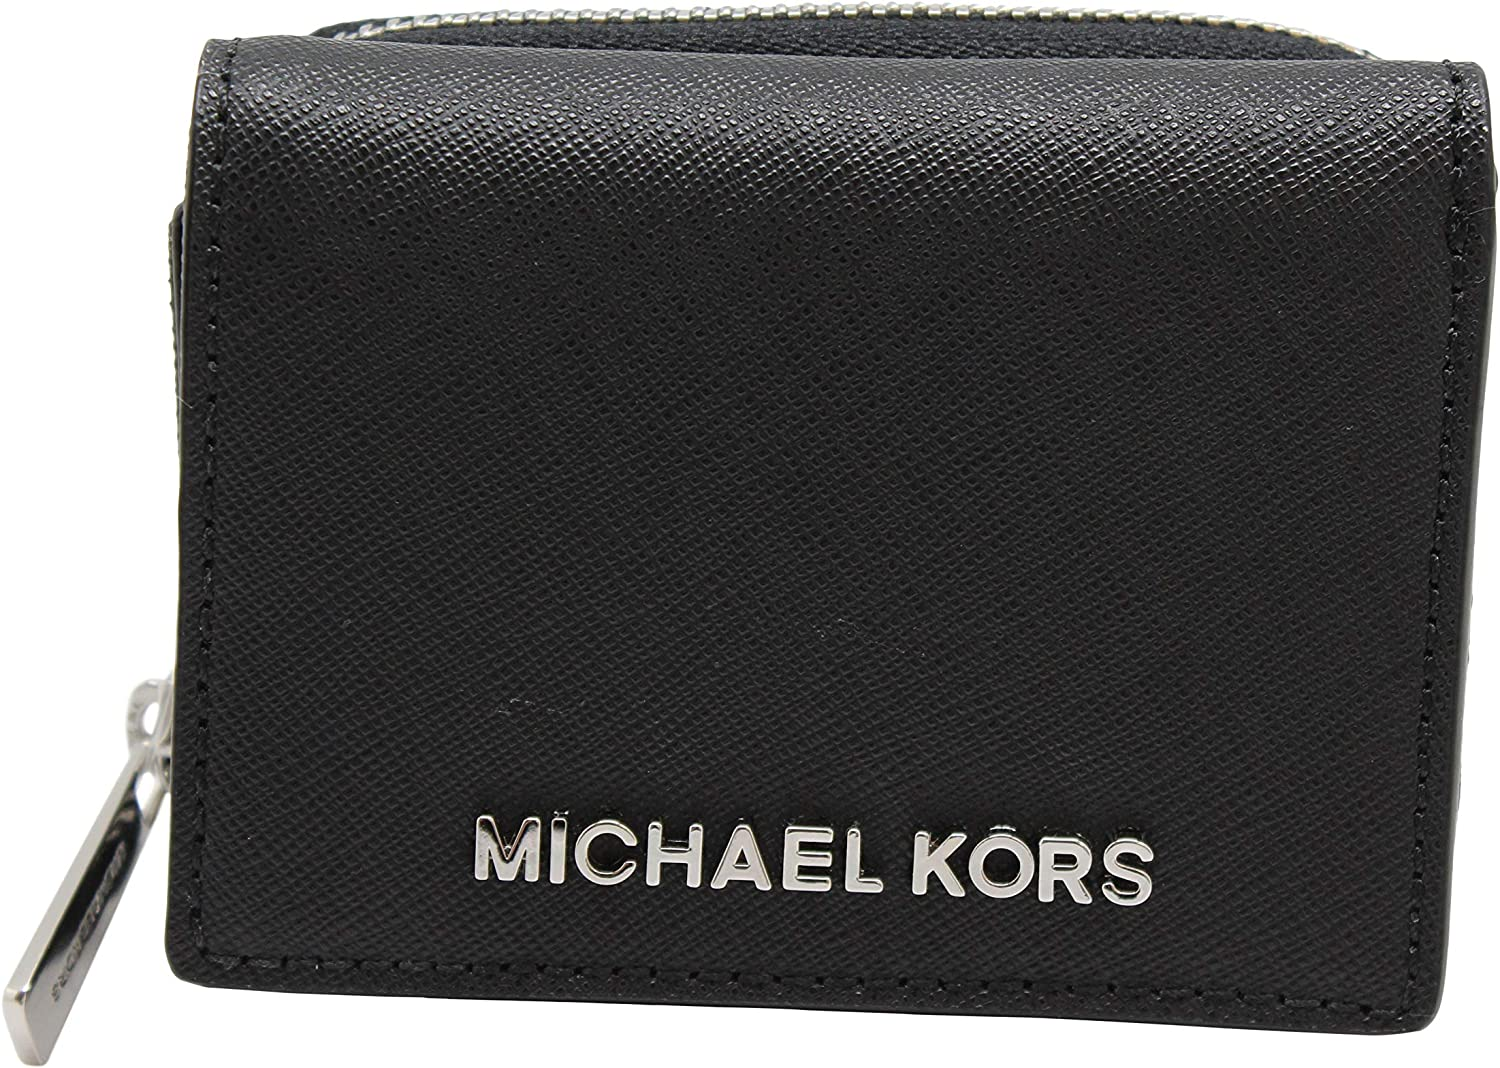 Michael Kors Jet Set Travel Small Multifunctional Zip Around Wallet Back